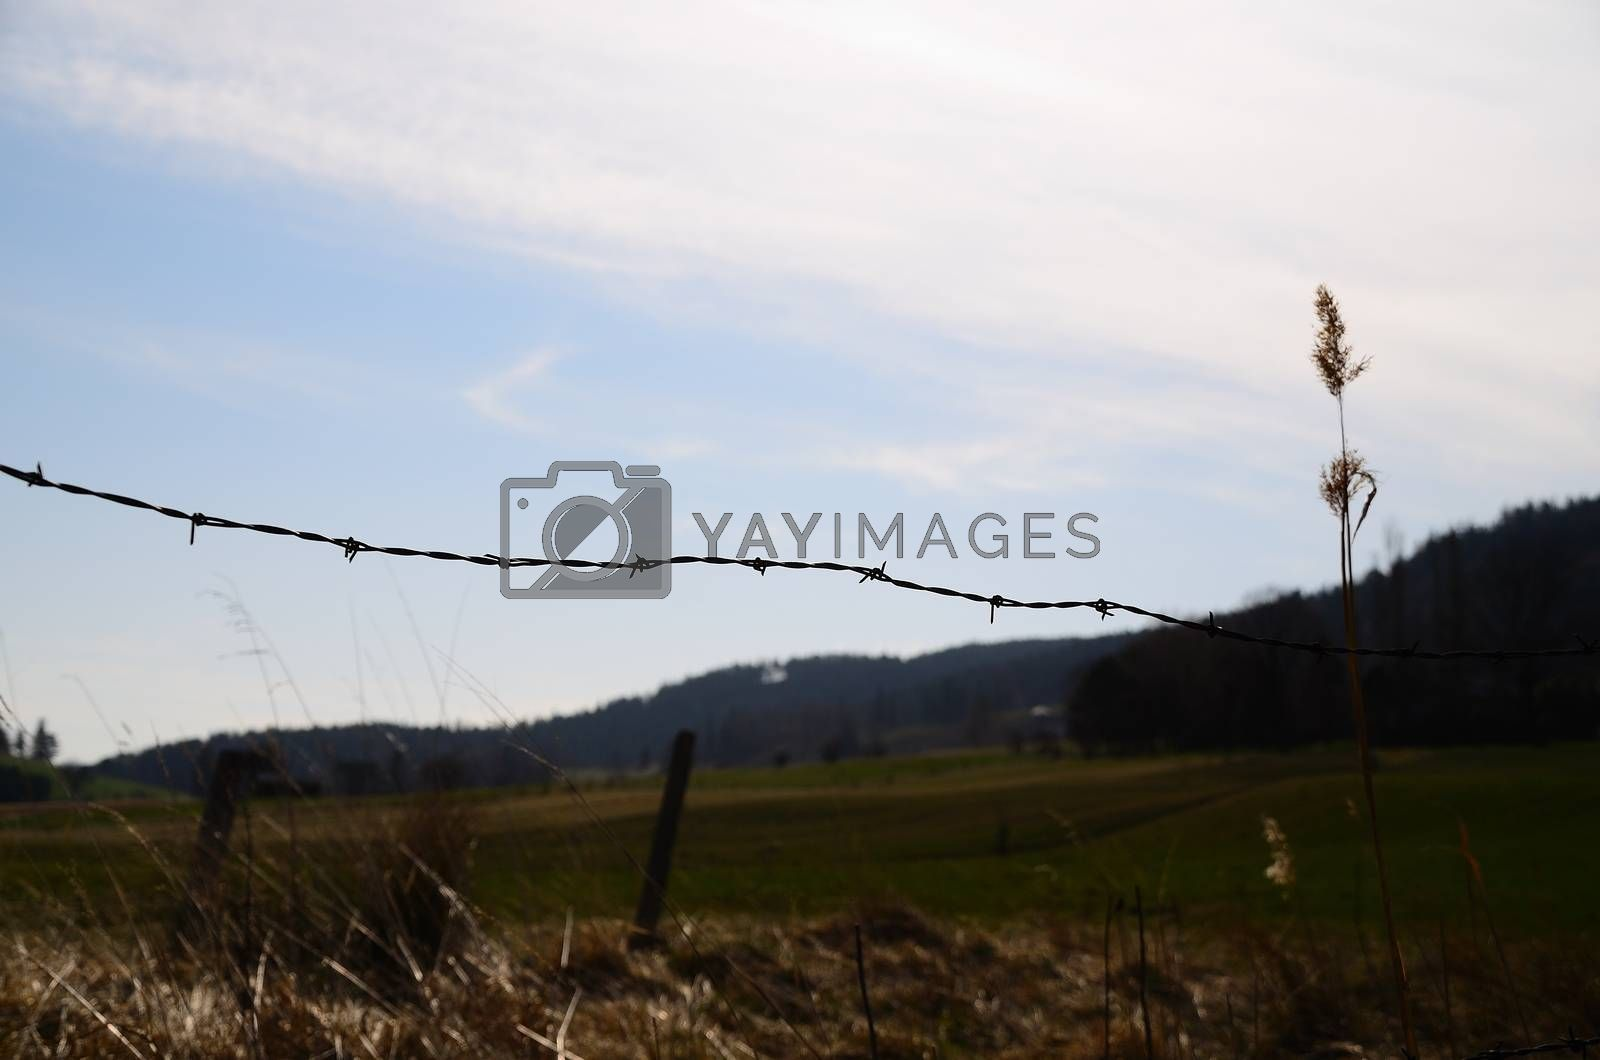 barbed wire while hiking in a natural landscape